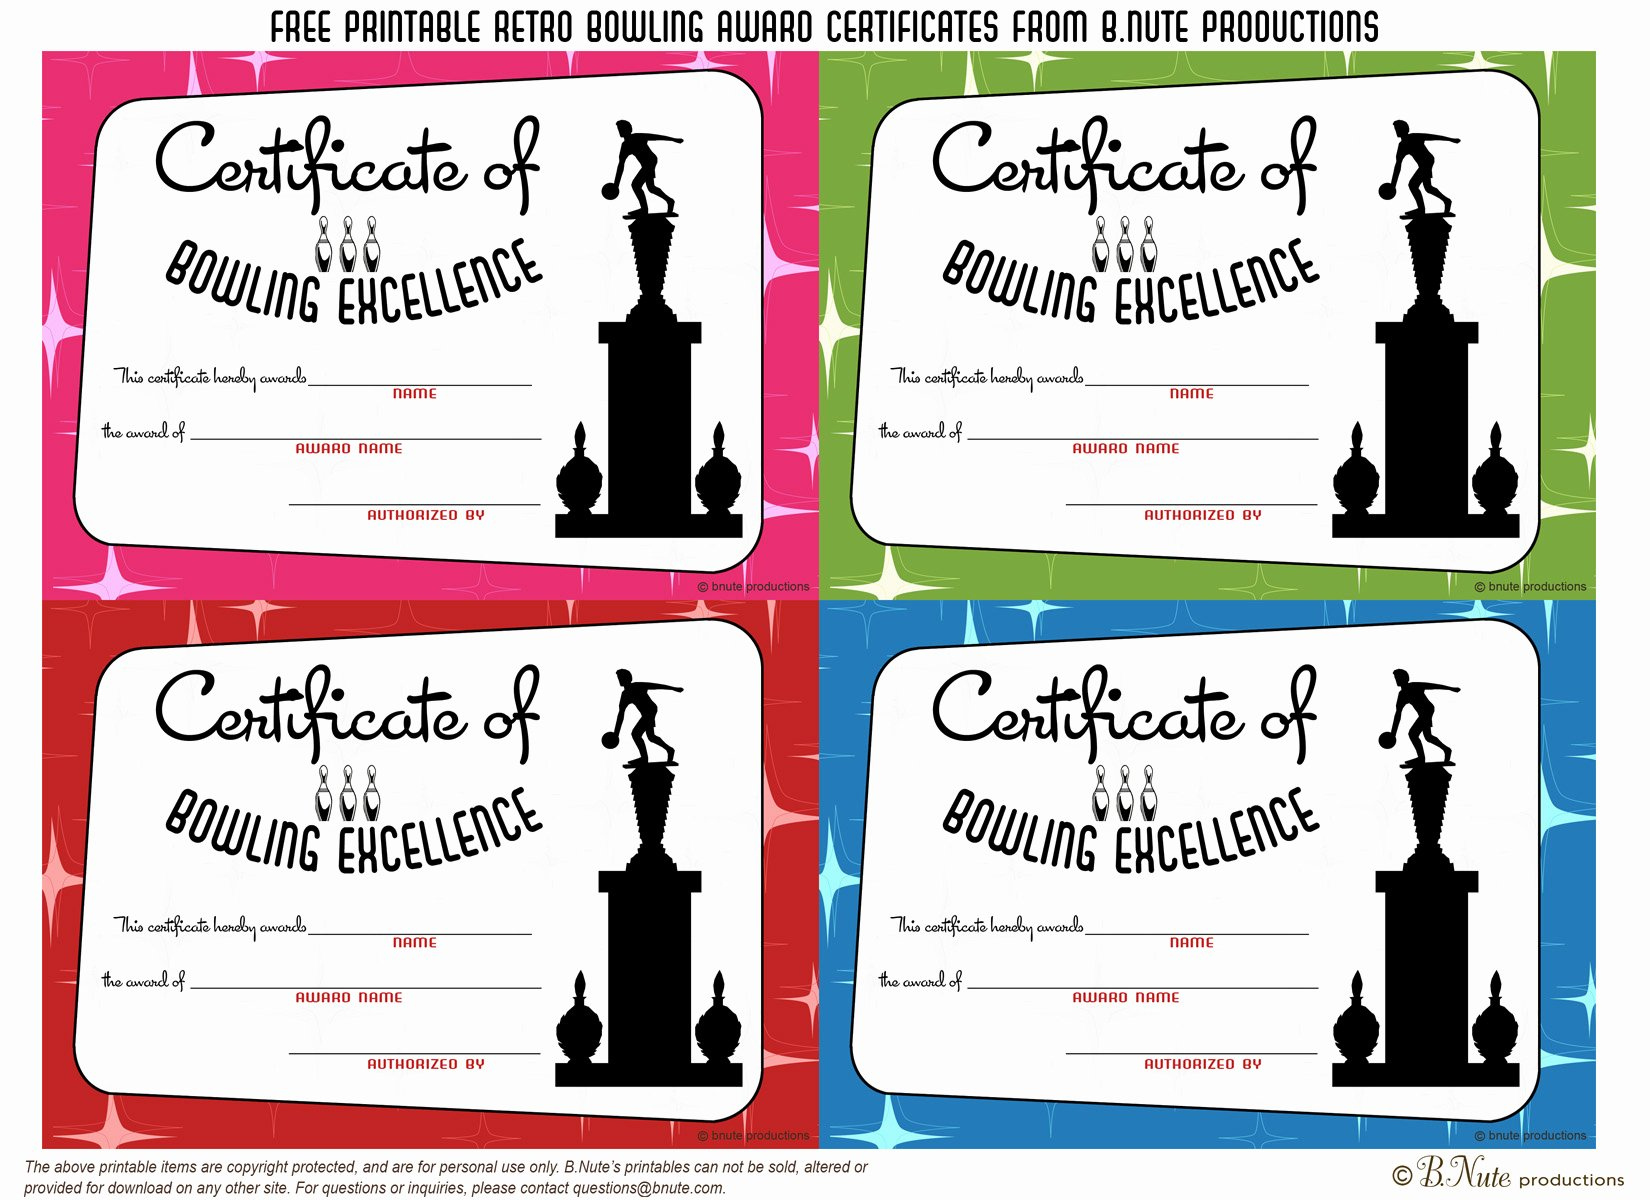 Free Printable Bowling Certificates Awesome Bnute Productions Free Printable Bowling Award Certificates